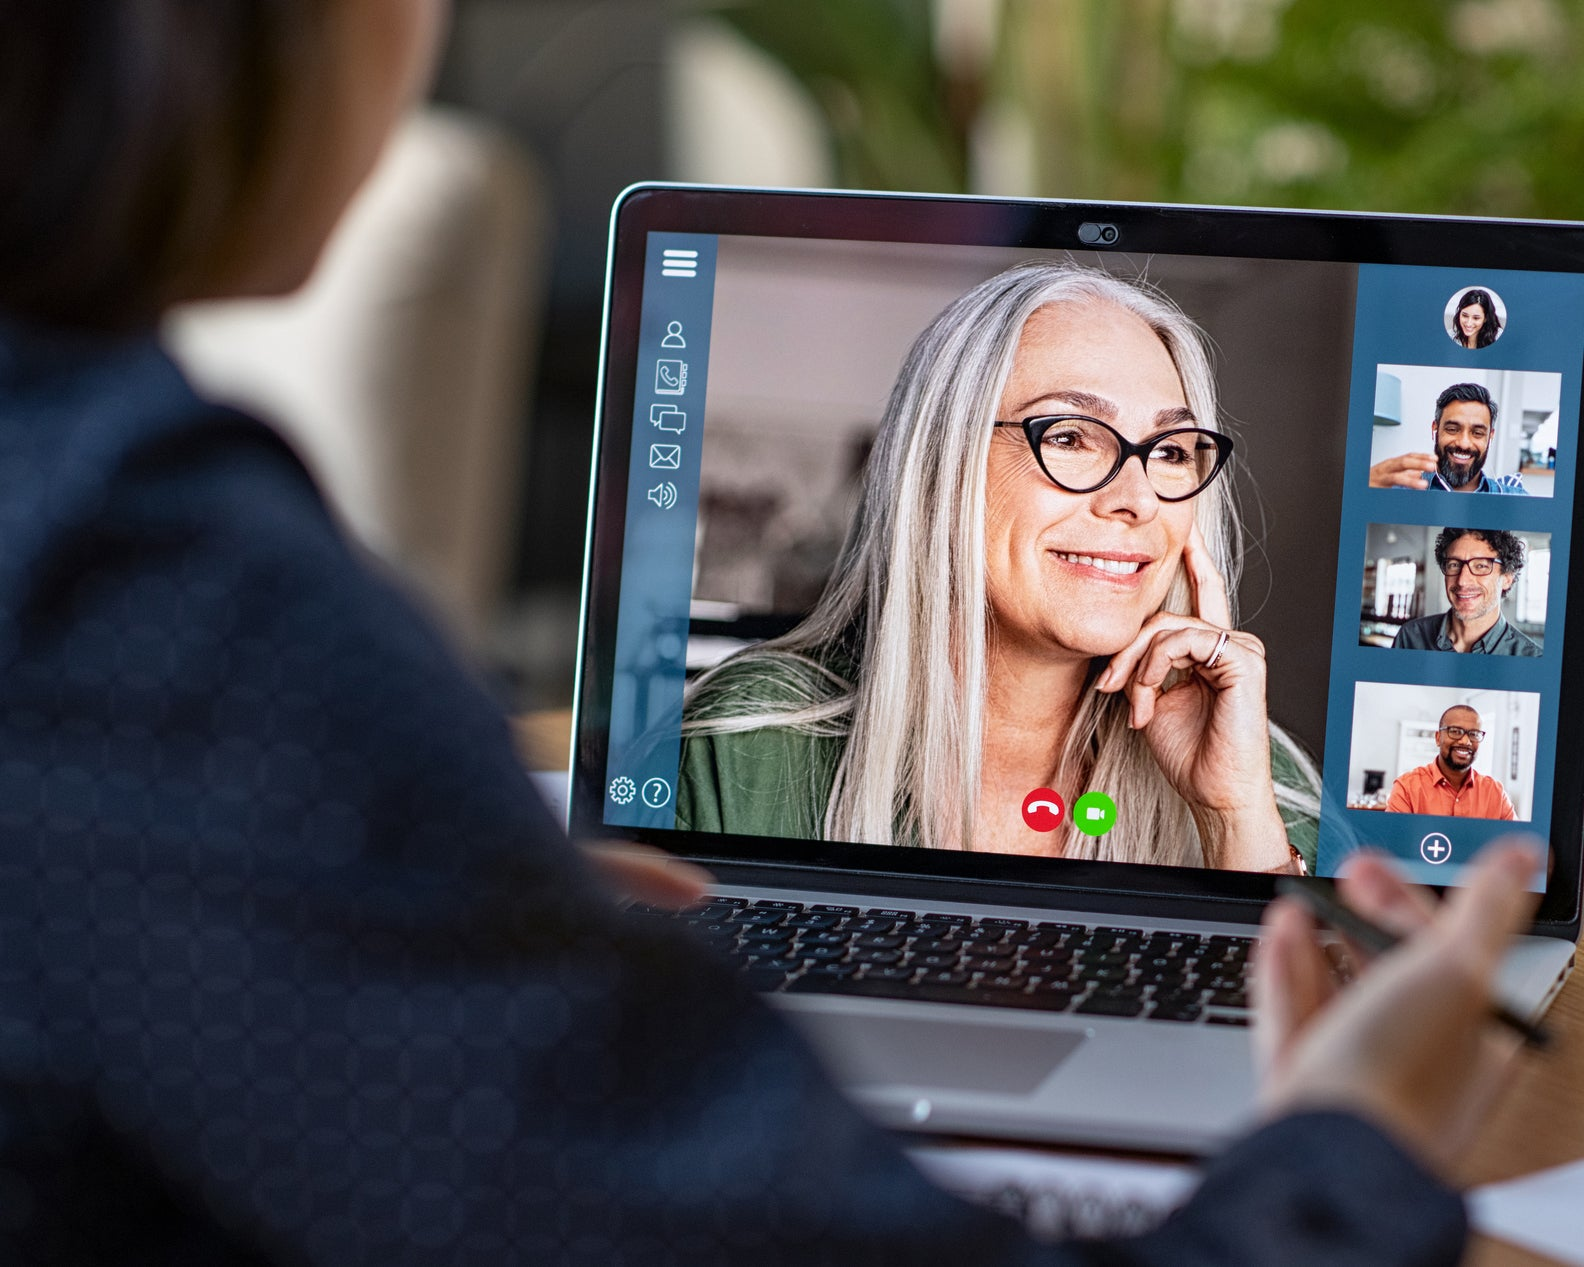 Four tips to looking your best on video chat